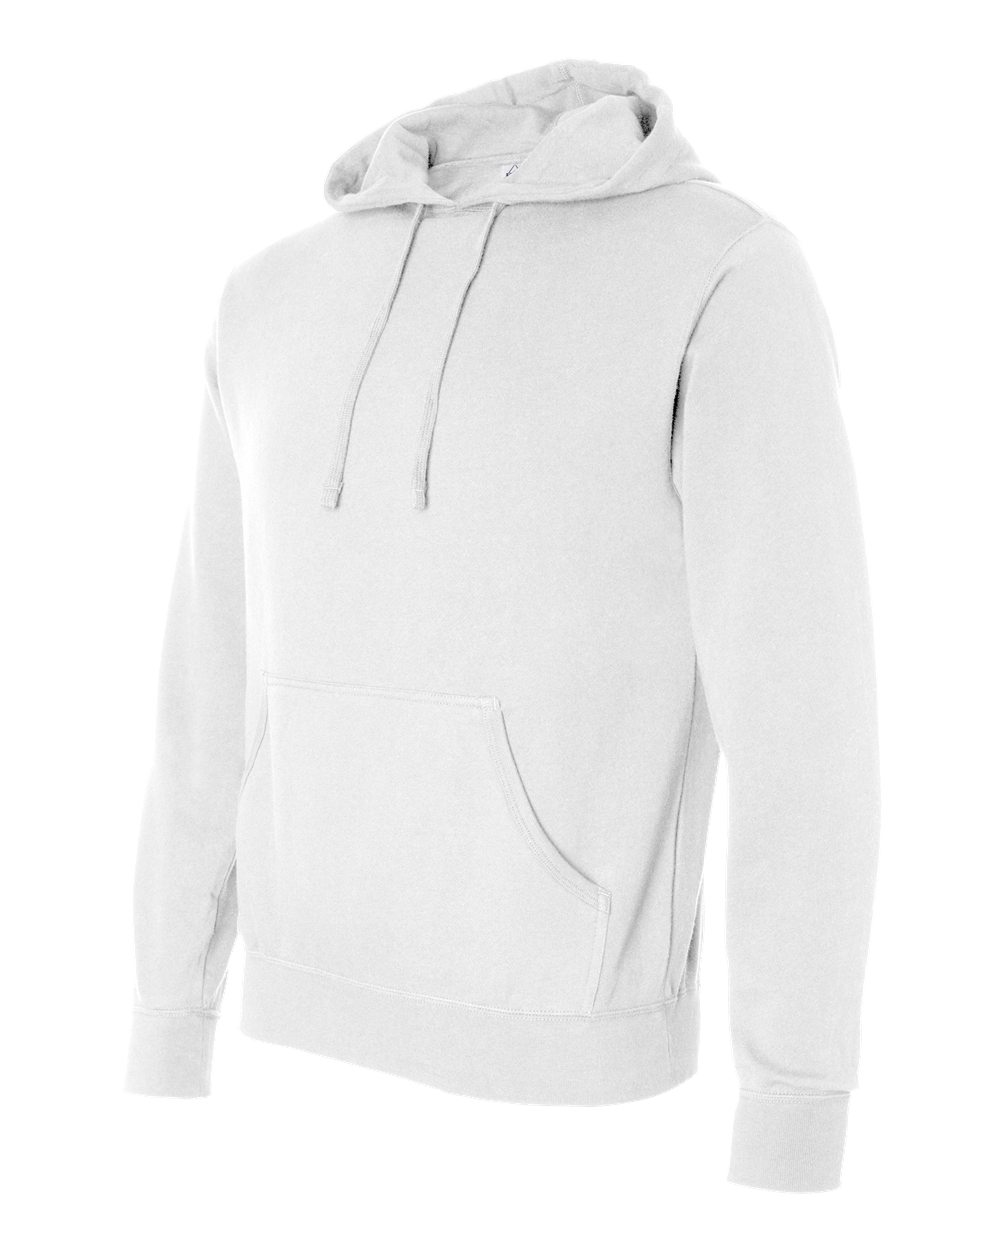 Independent Trading Co AFX4000 - Hooded Pullover Sweatshirt